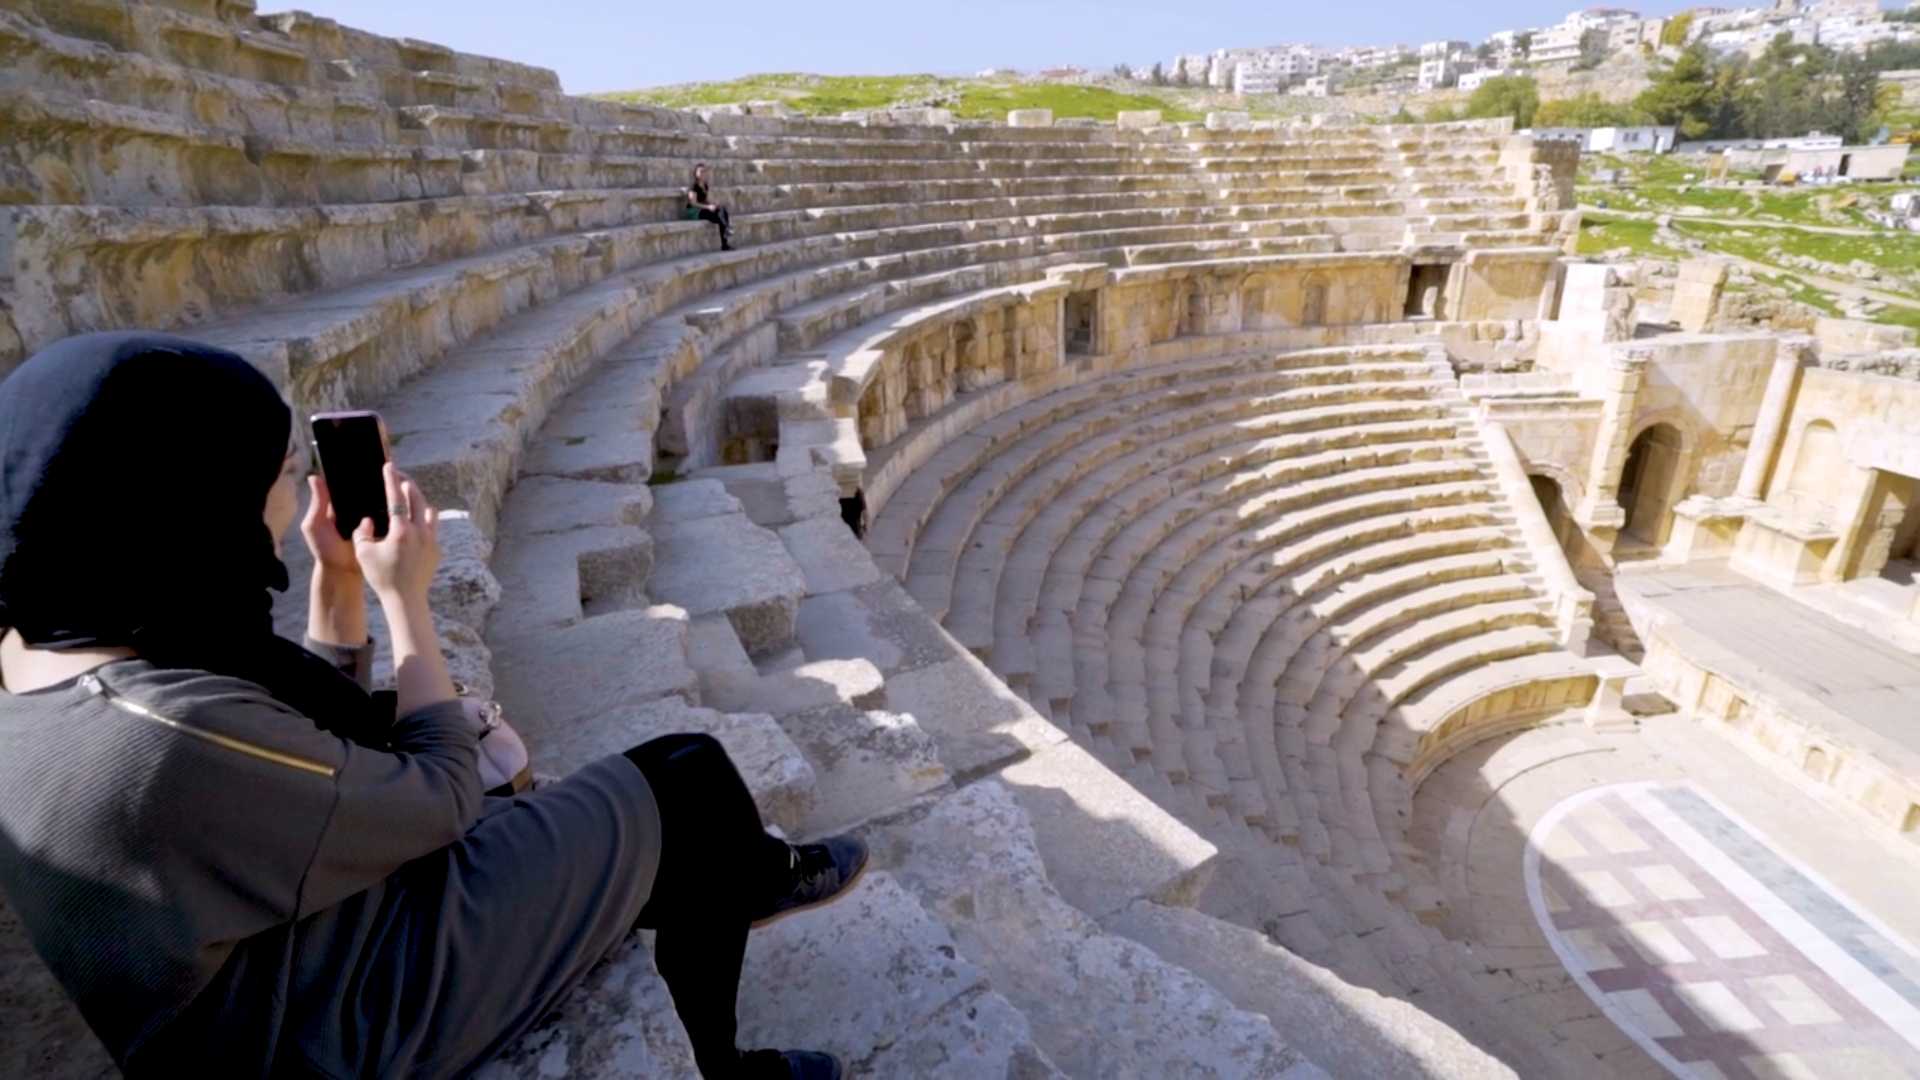 A student sitting in an amphitheatre